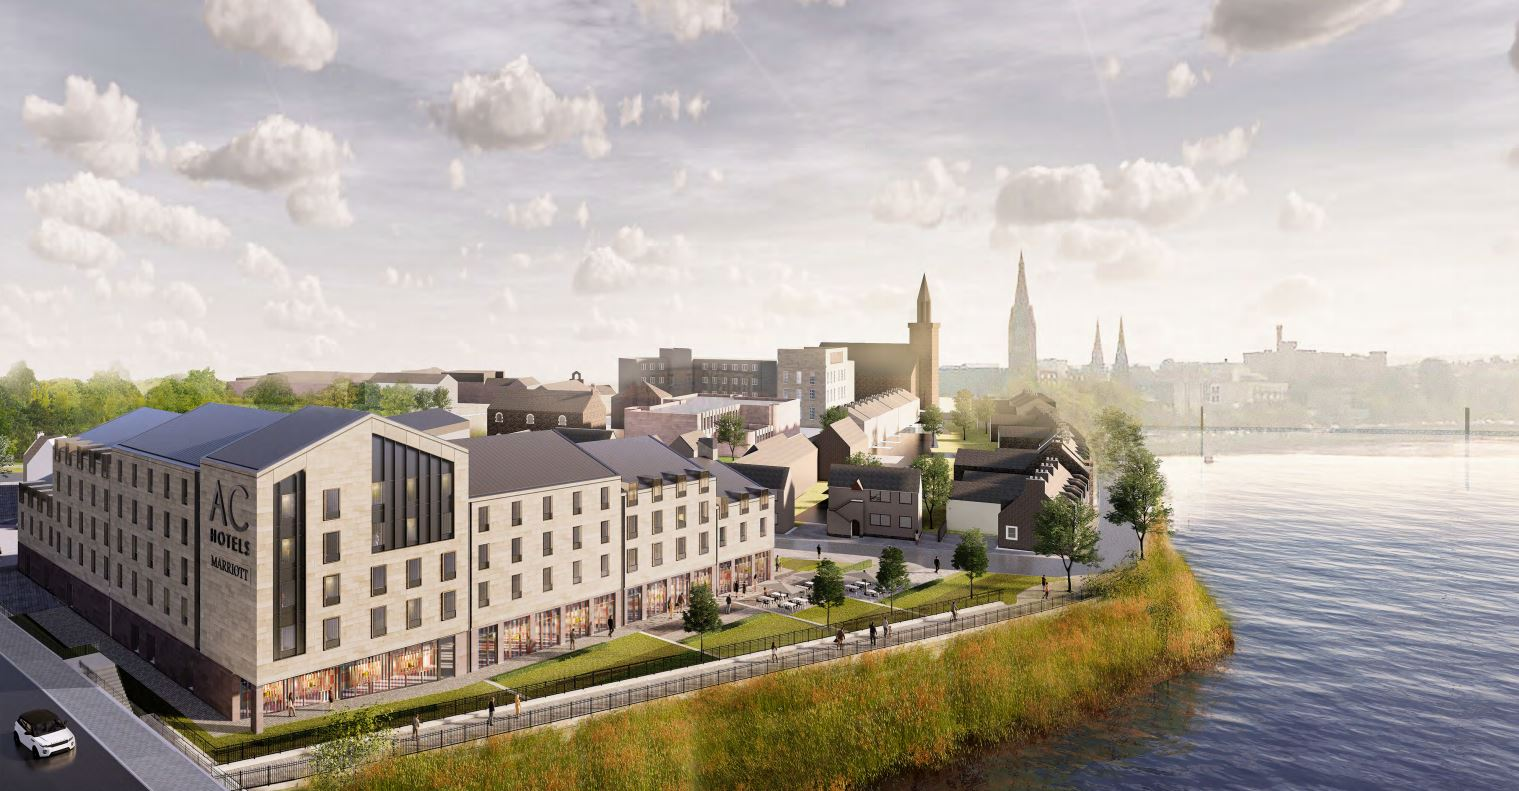 The new design for the hotel on Glebe Street in Inverness